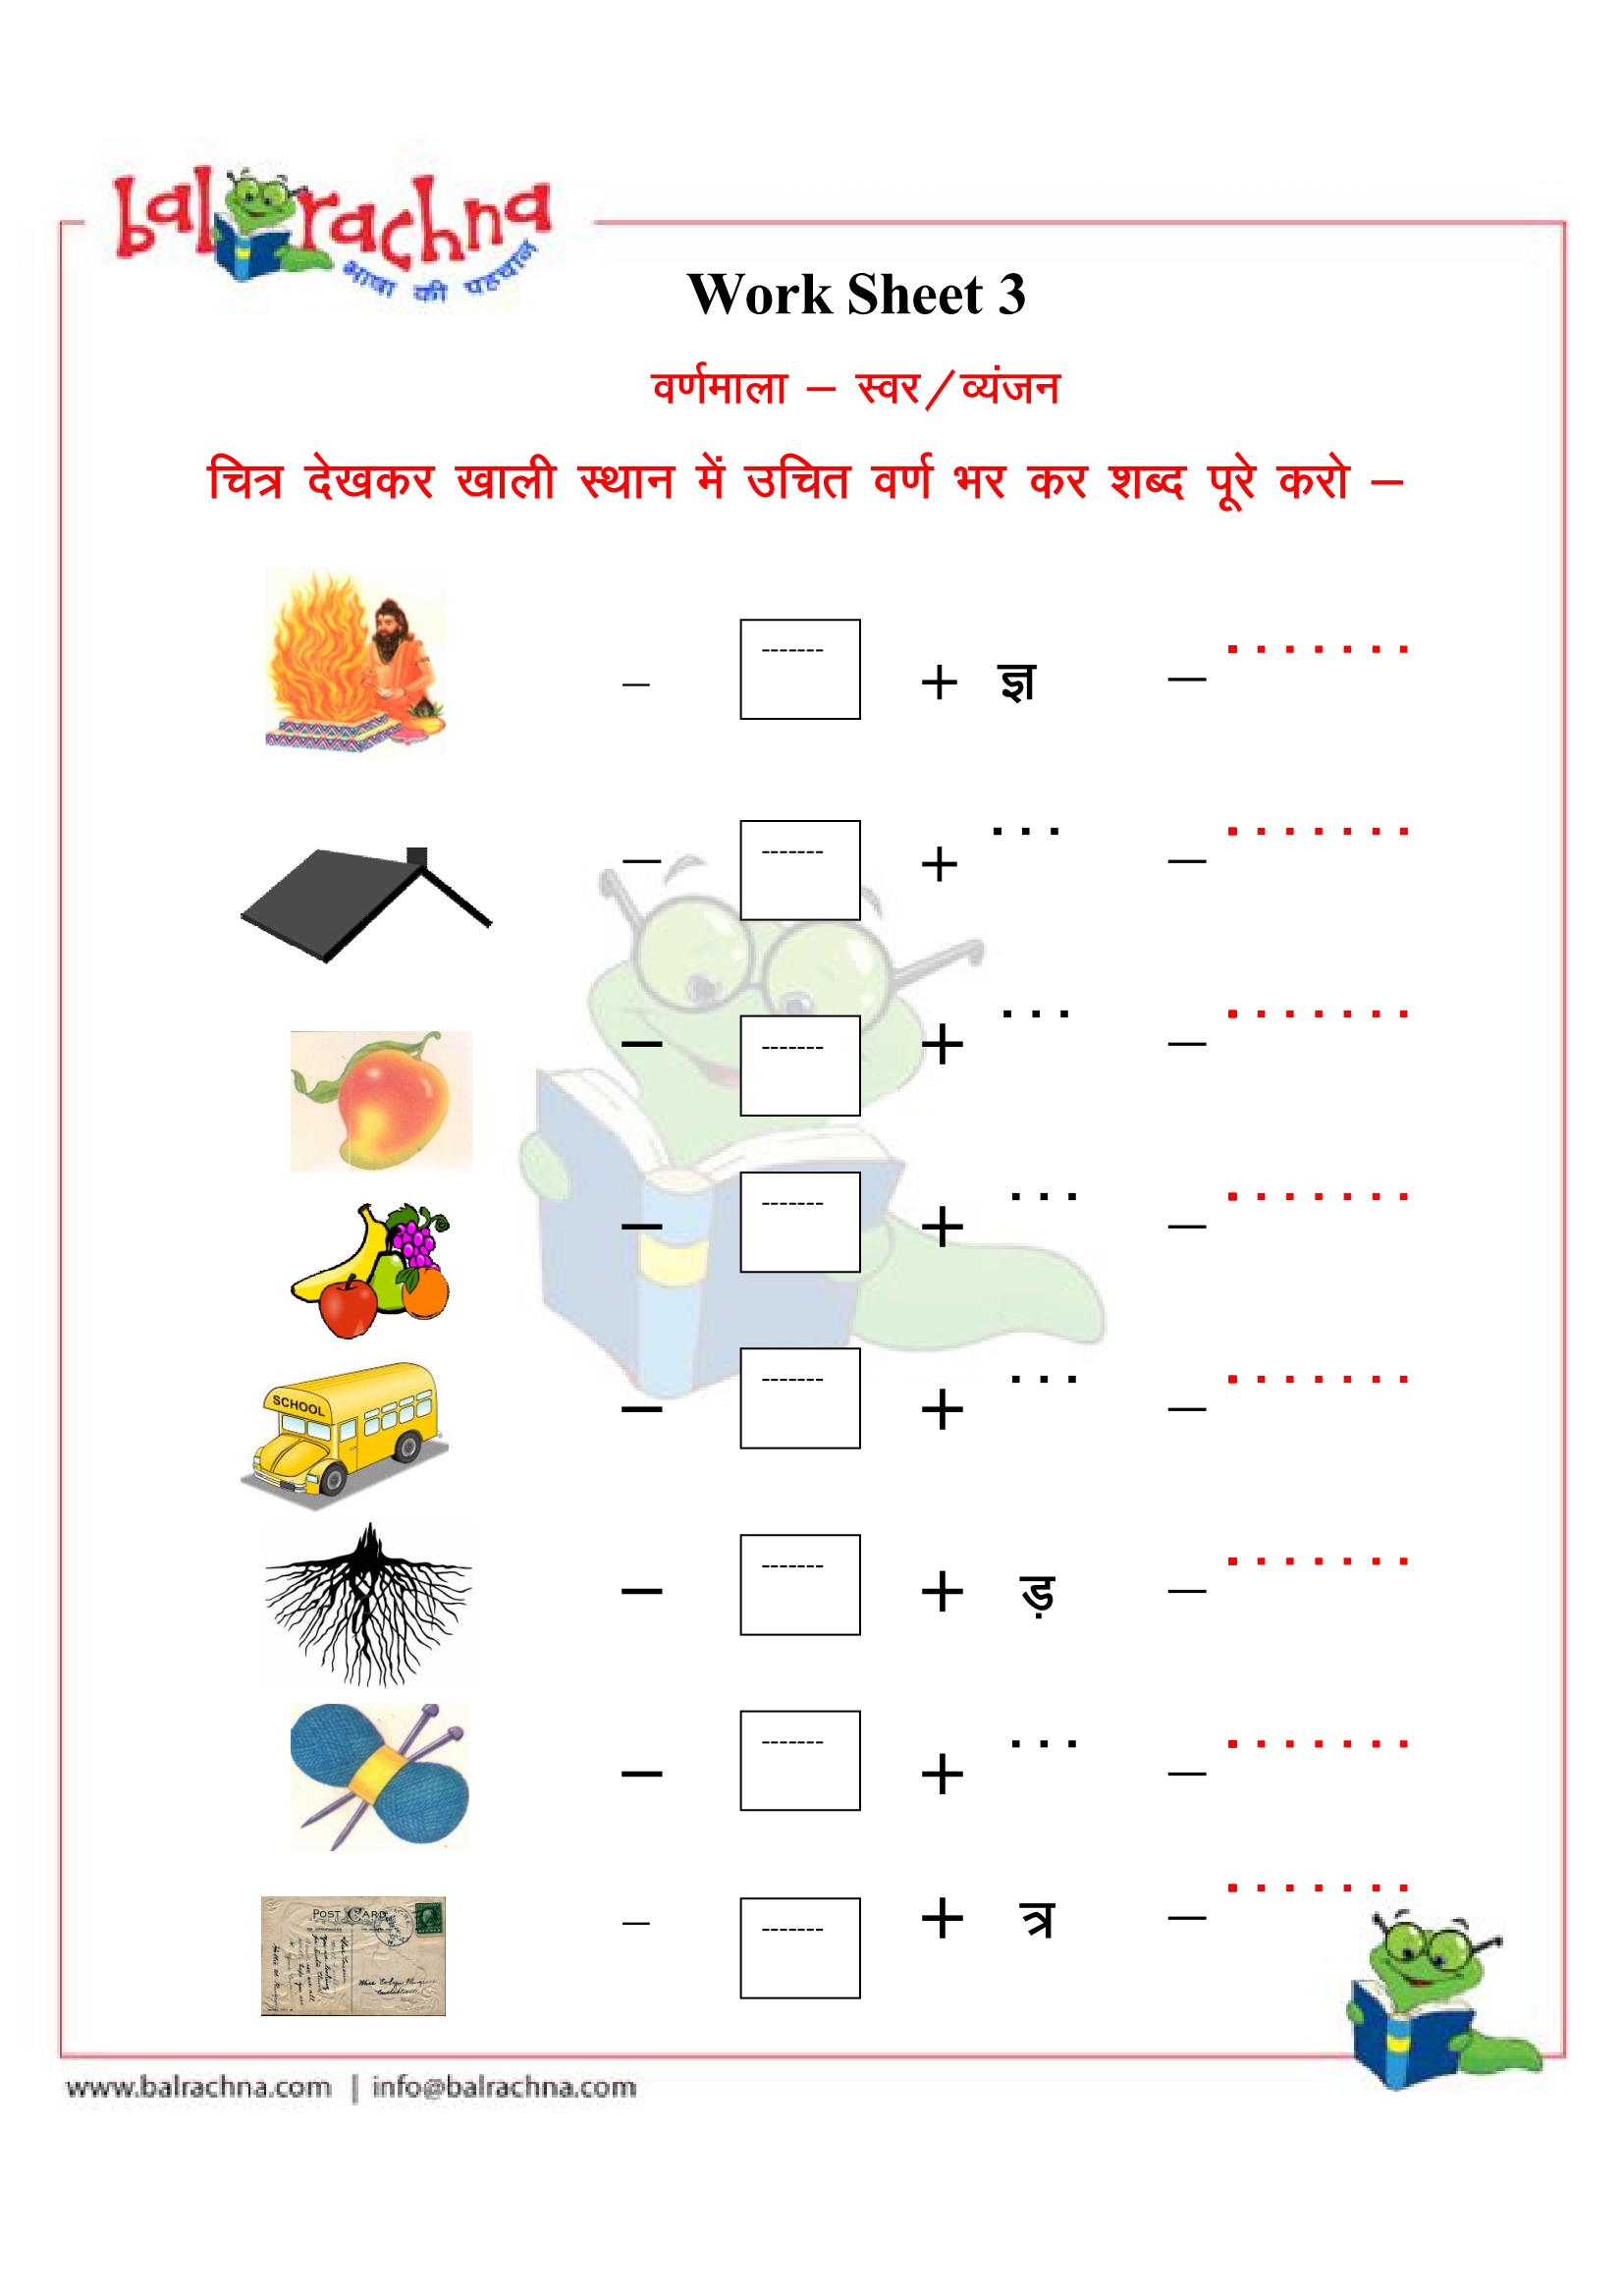 Hindi Worksheets Image By Rachna Maheshwari On Rachna